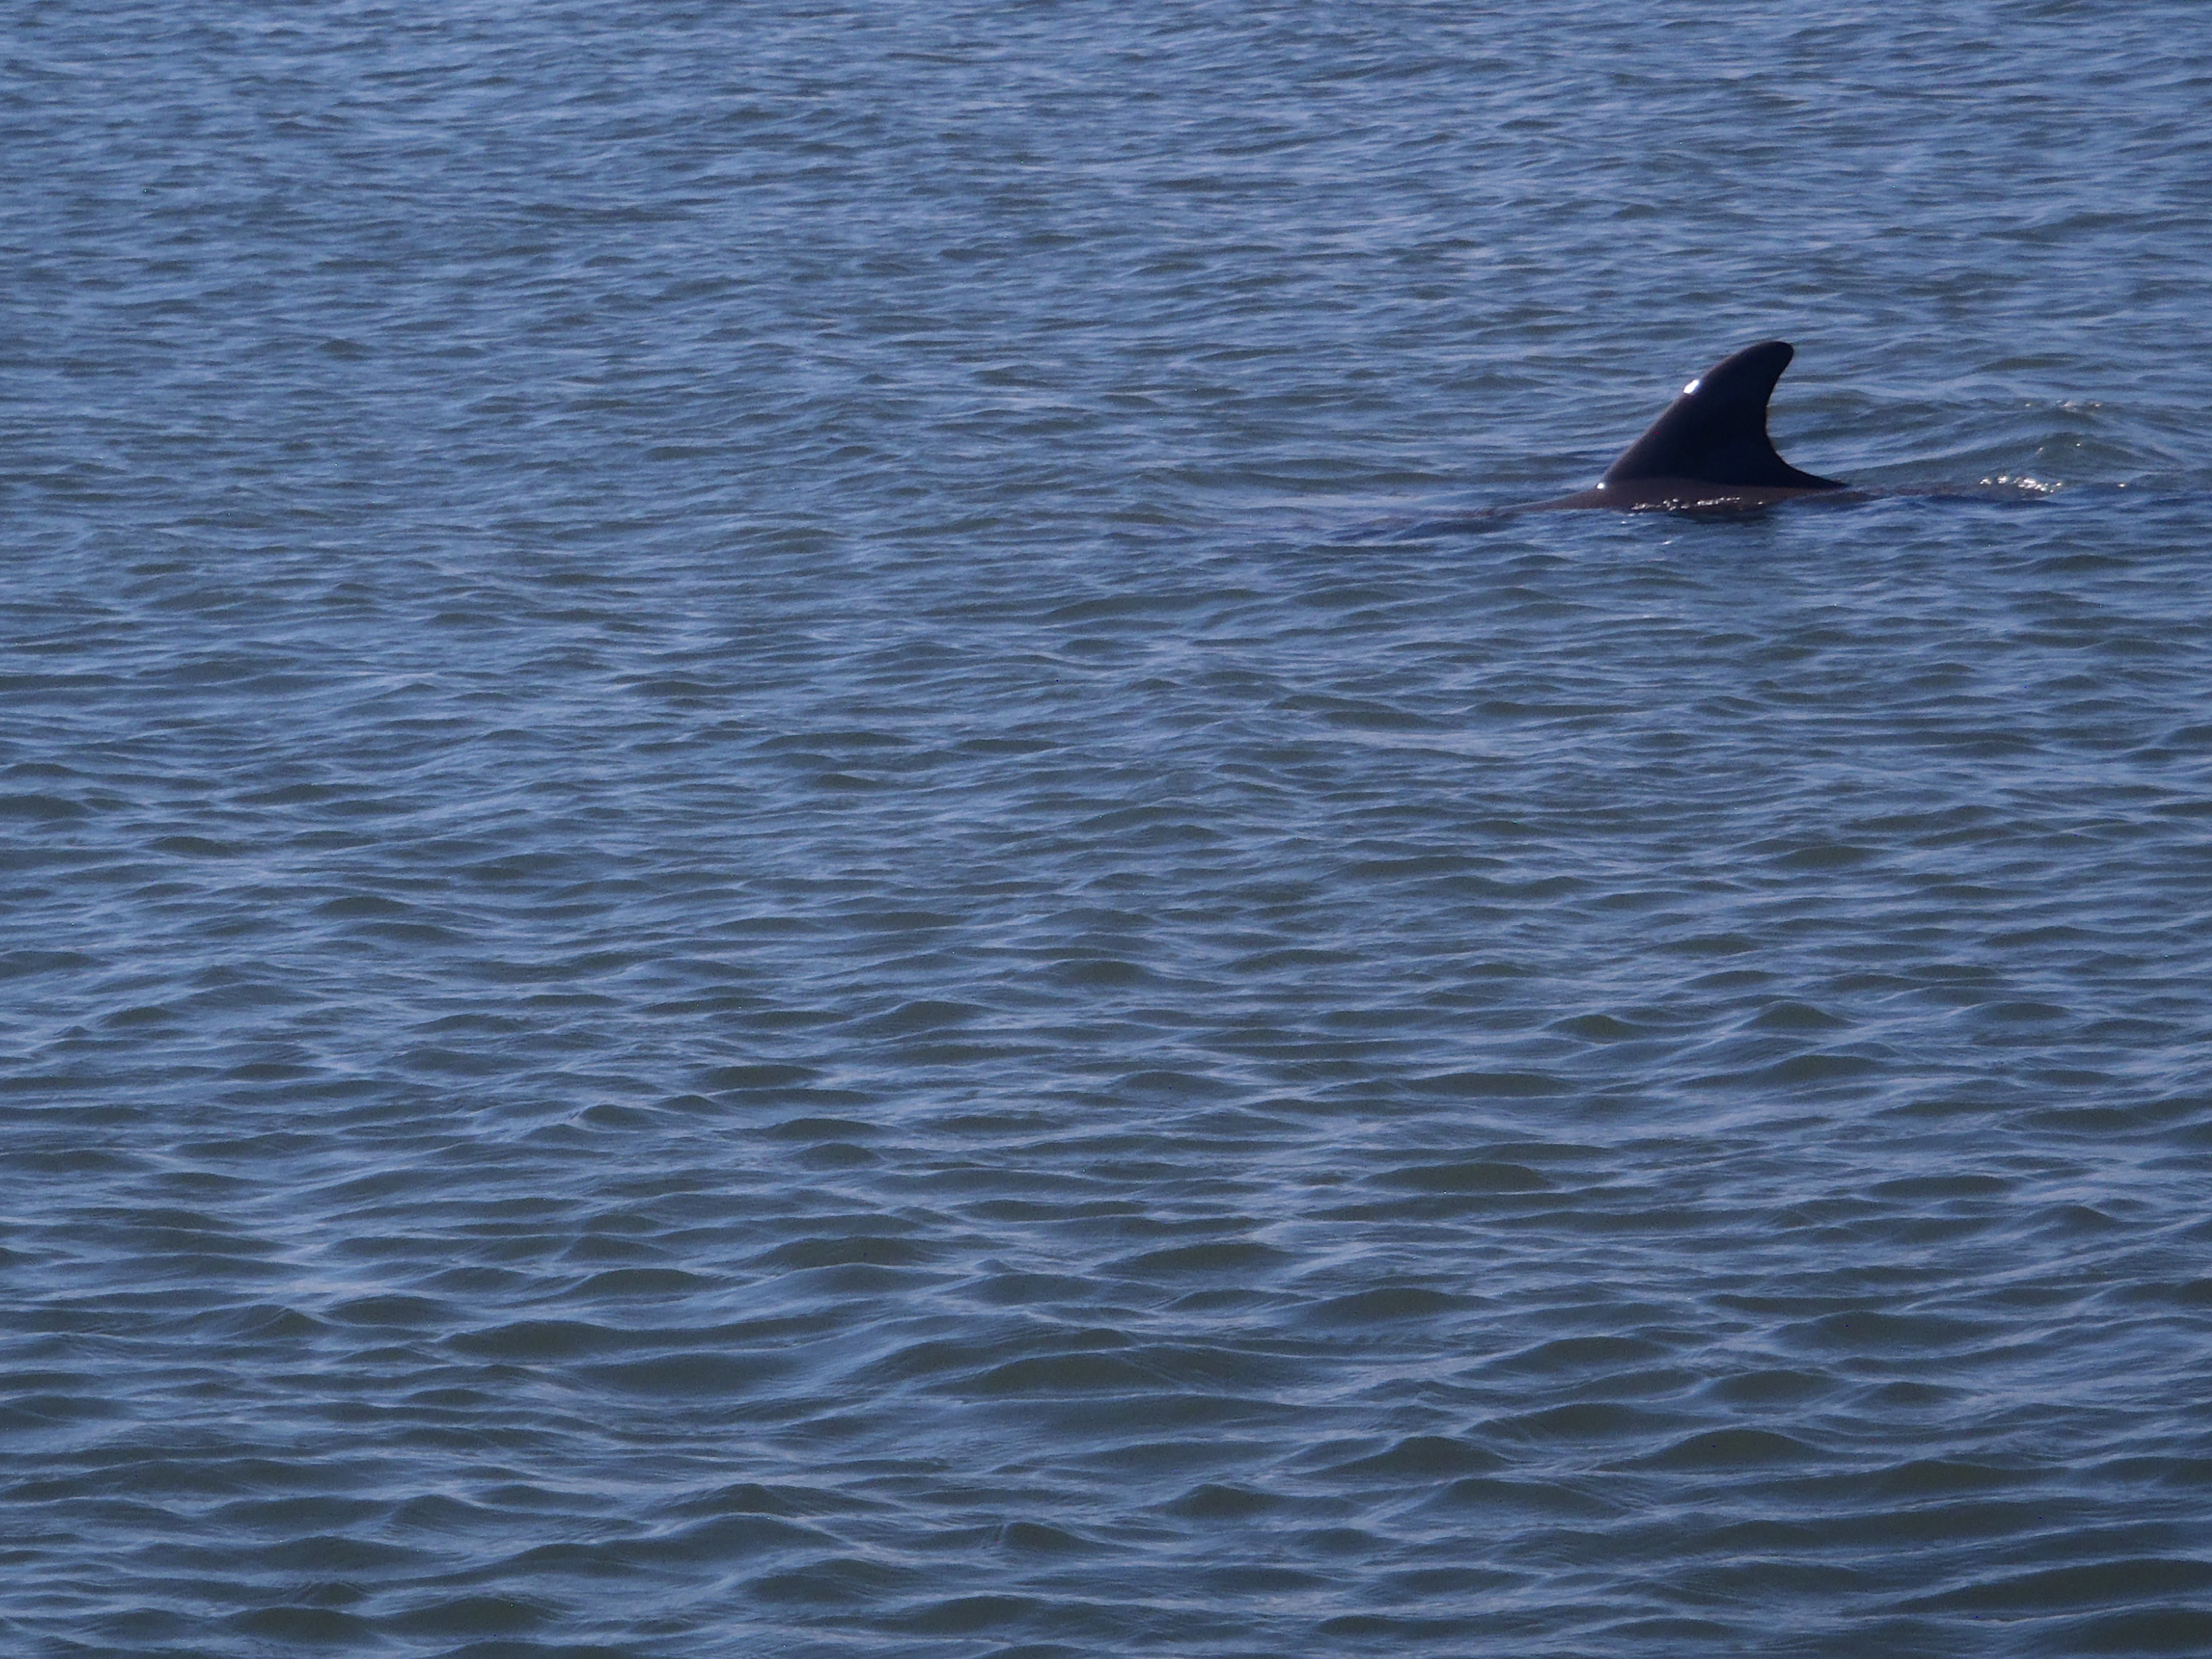 Dolphin Fin Seen While On A Stand Up Paddle Boarding Adventure Tour With Supecoadventures Minutes From